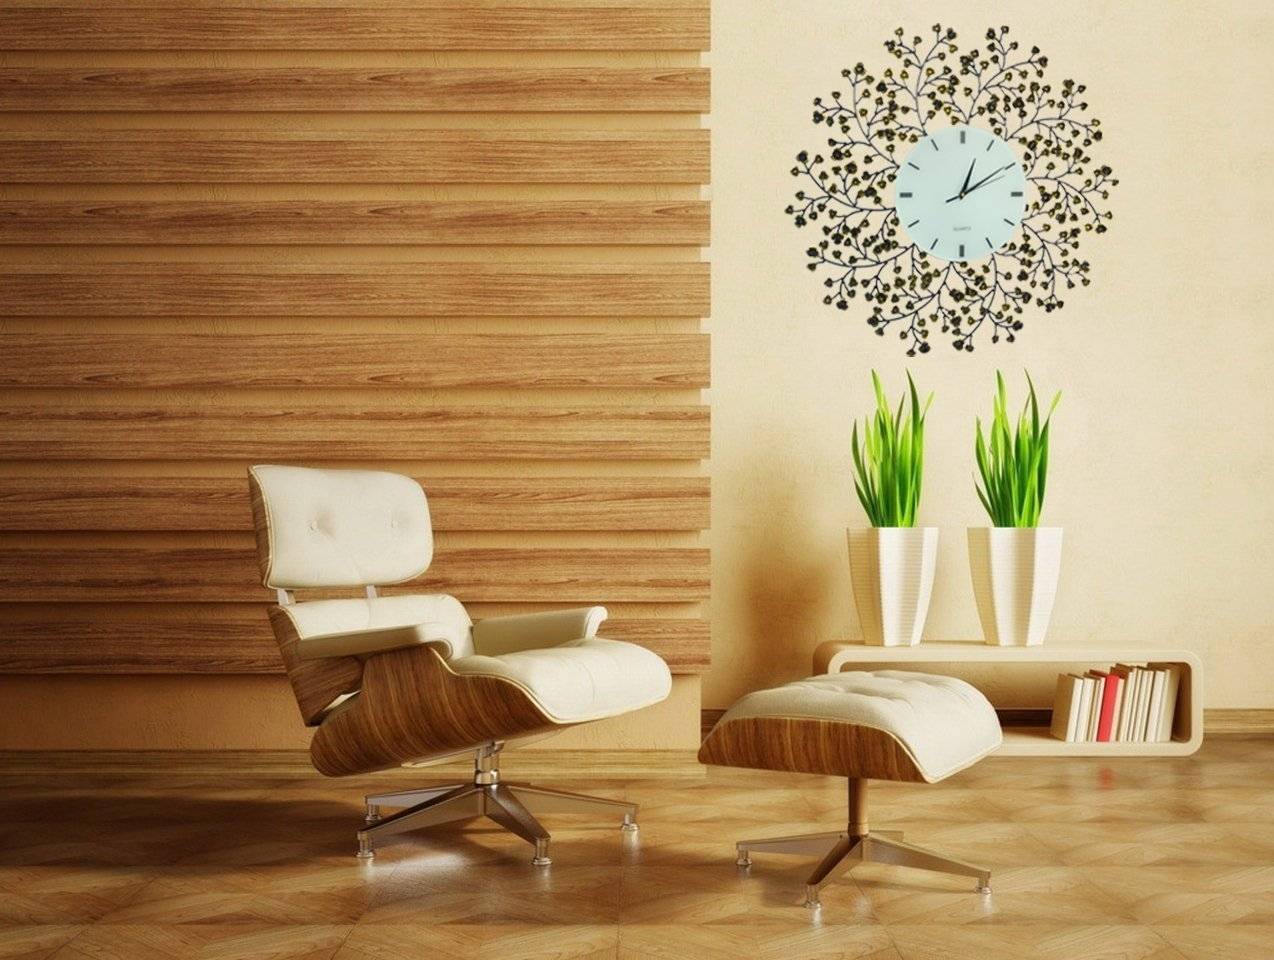 20 Unique & Decorative Wall Clocks